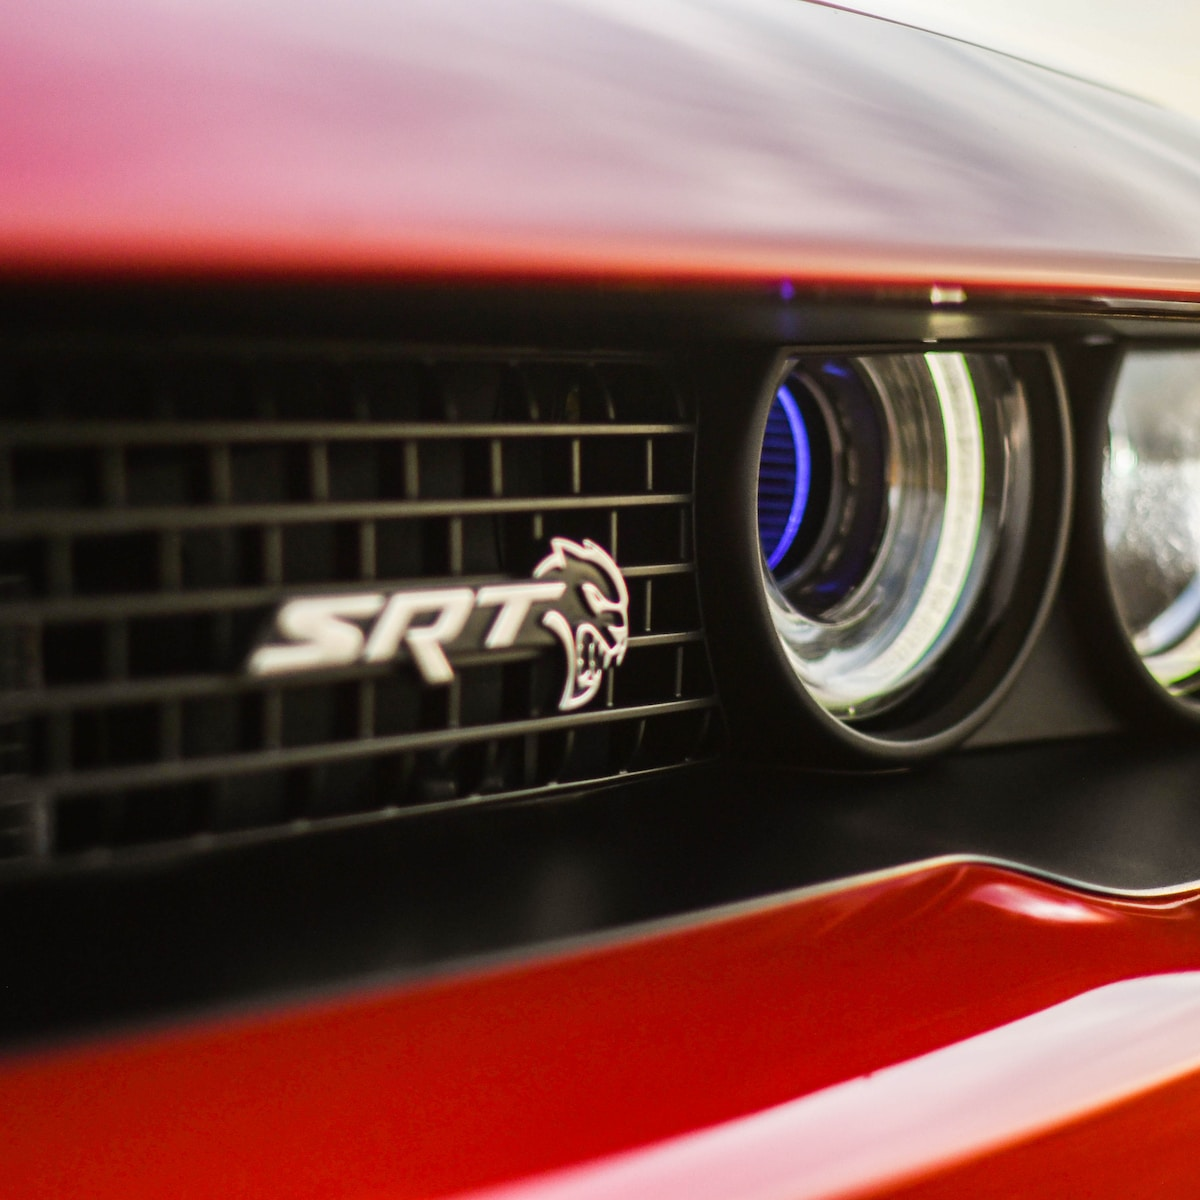 INSTAGRAM: SARRAMPHOTOGRAPHY Felino, a very nice man with an insanely fast car. Drag tires mounted on the back of his 2018 Dodge Challenger SRT Hellcat. This beast generates around 1000 horsepower. Shot in the Rocky Mountain Arsenal